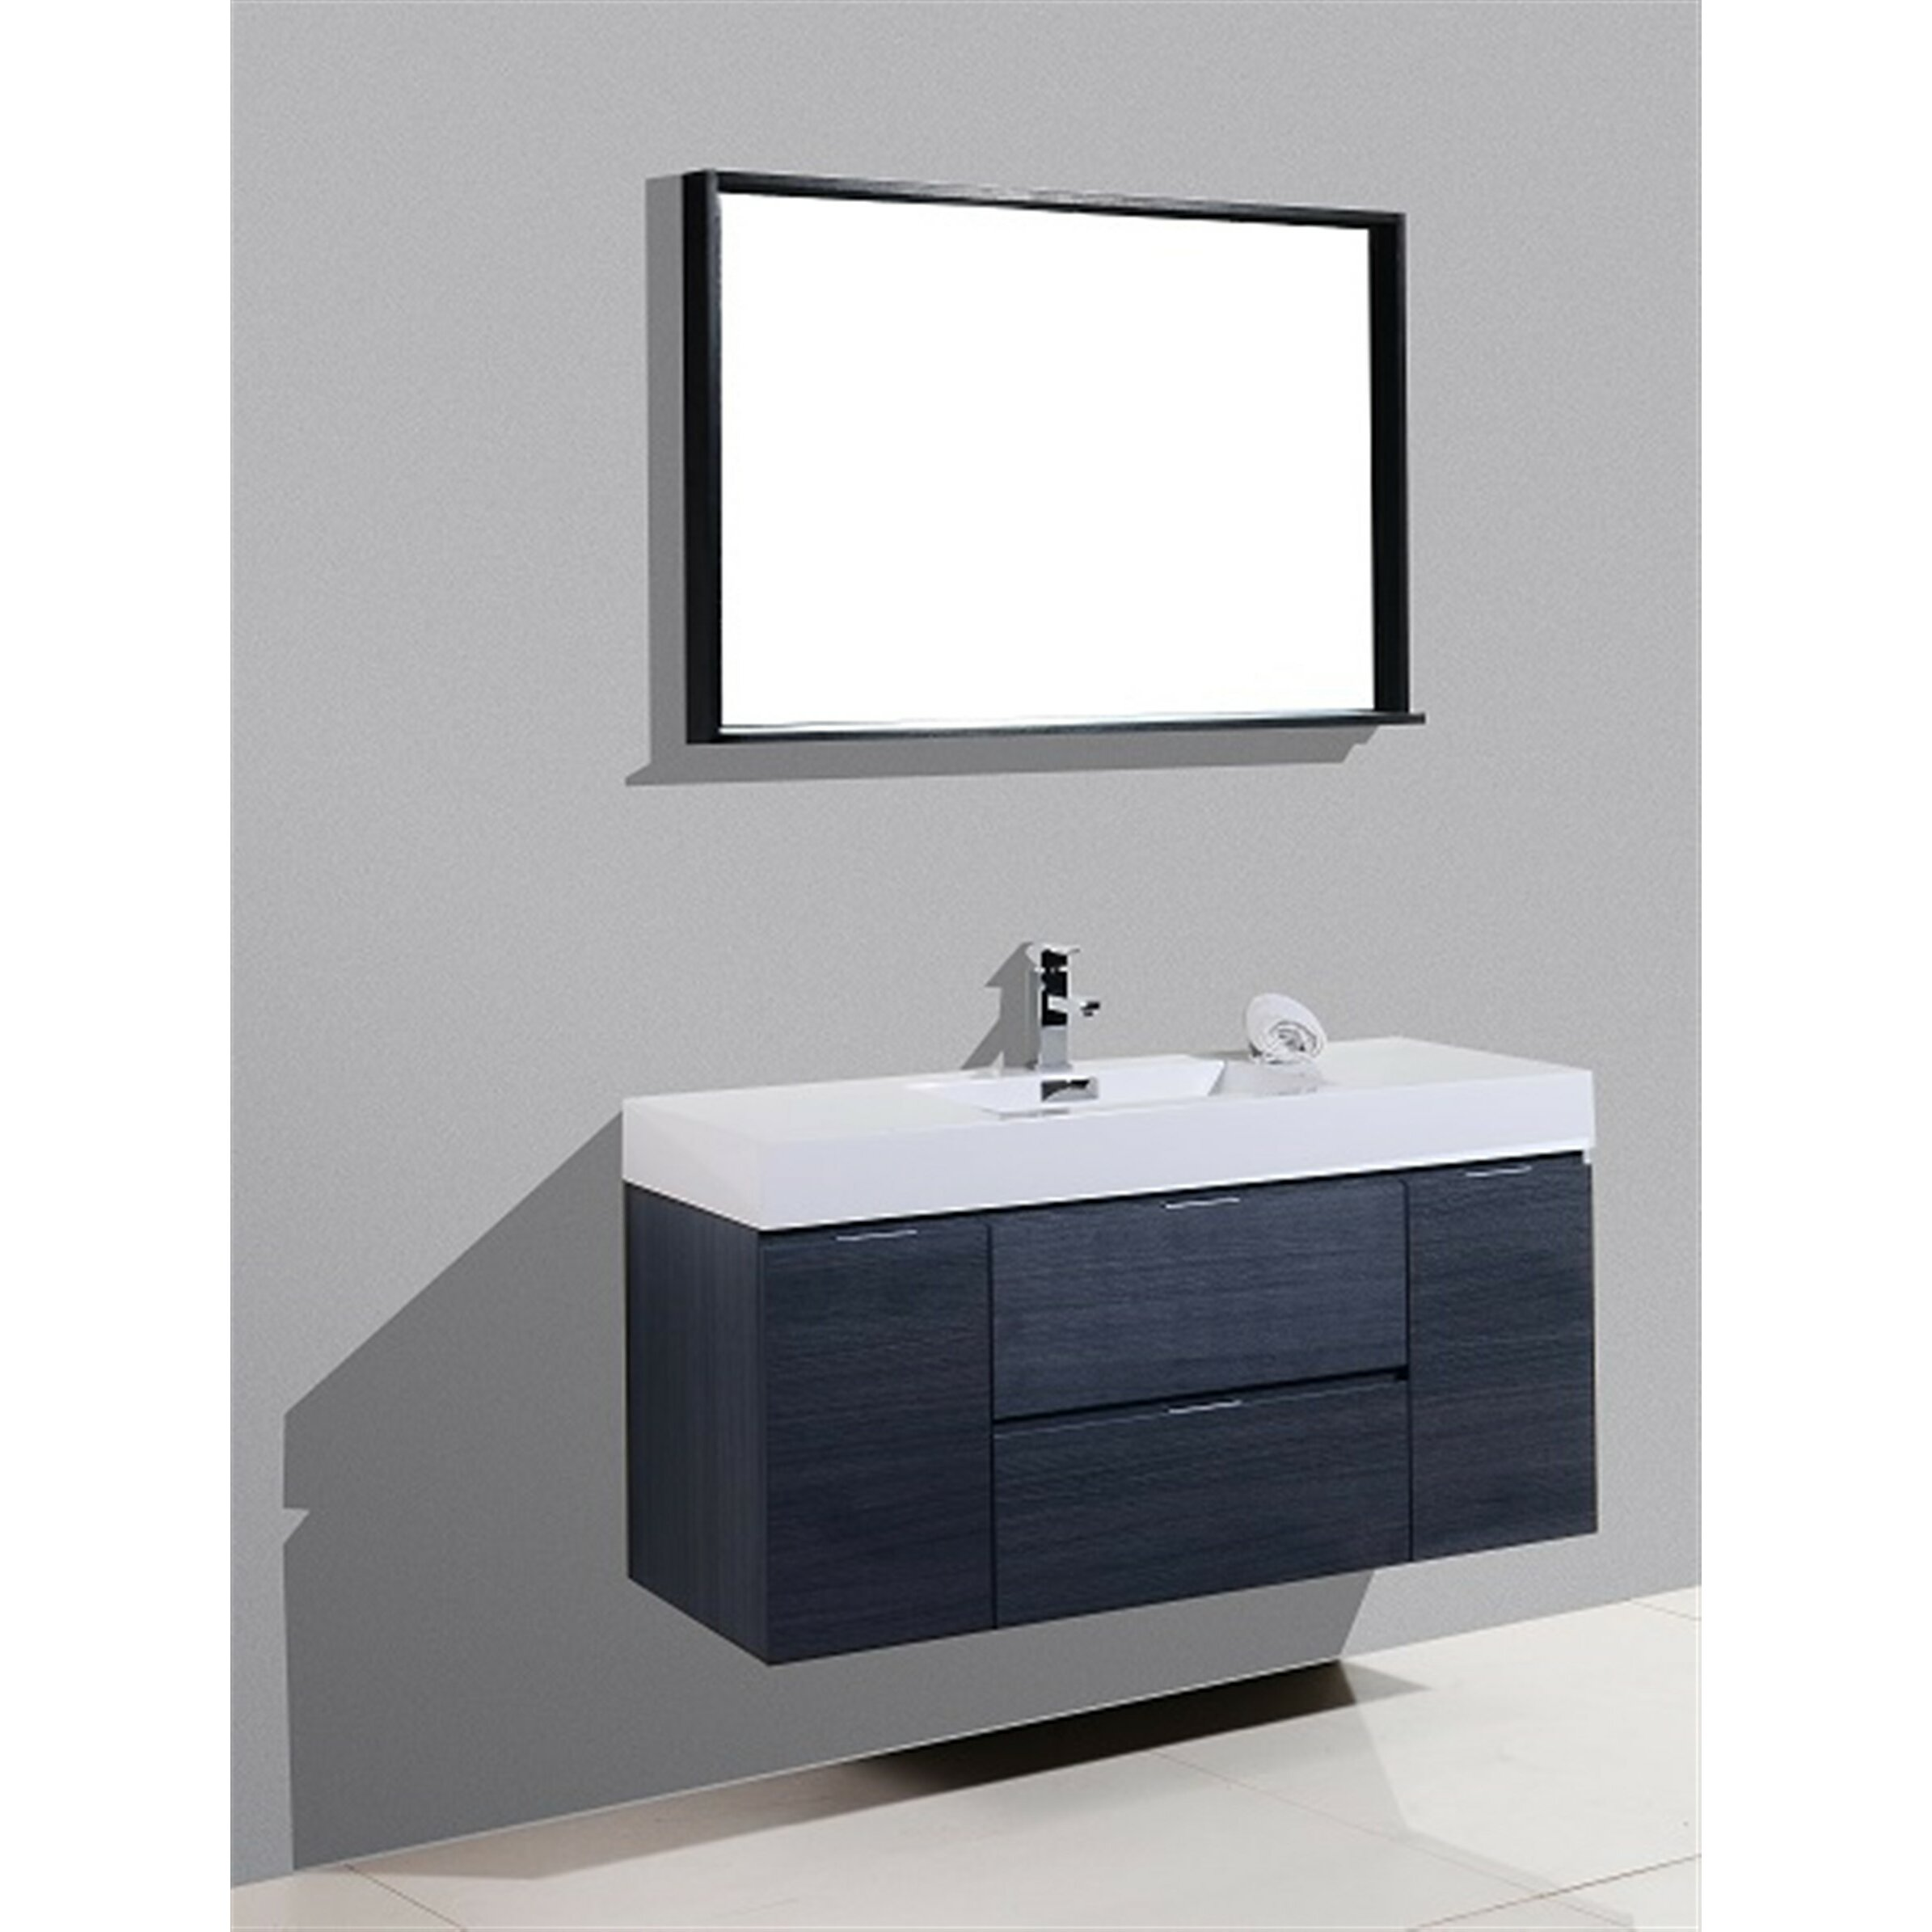 Bathroom Single Vanity Wade Logan Tenafly 48 Single Wall Mount Modern Bathroom Vanity